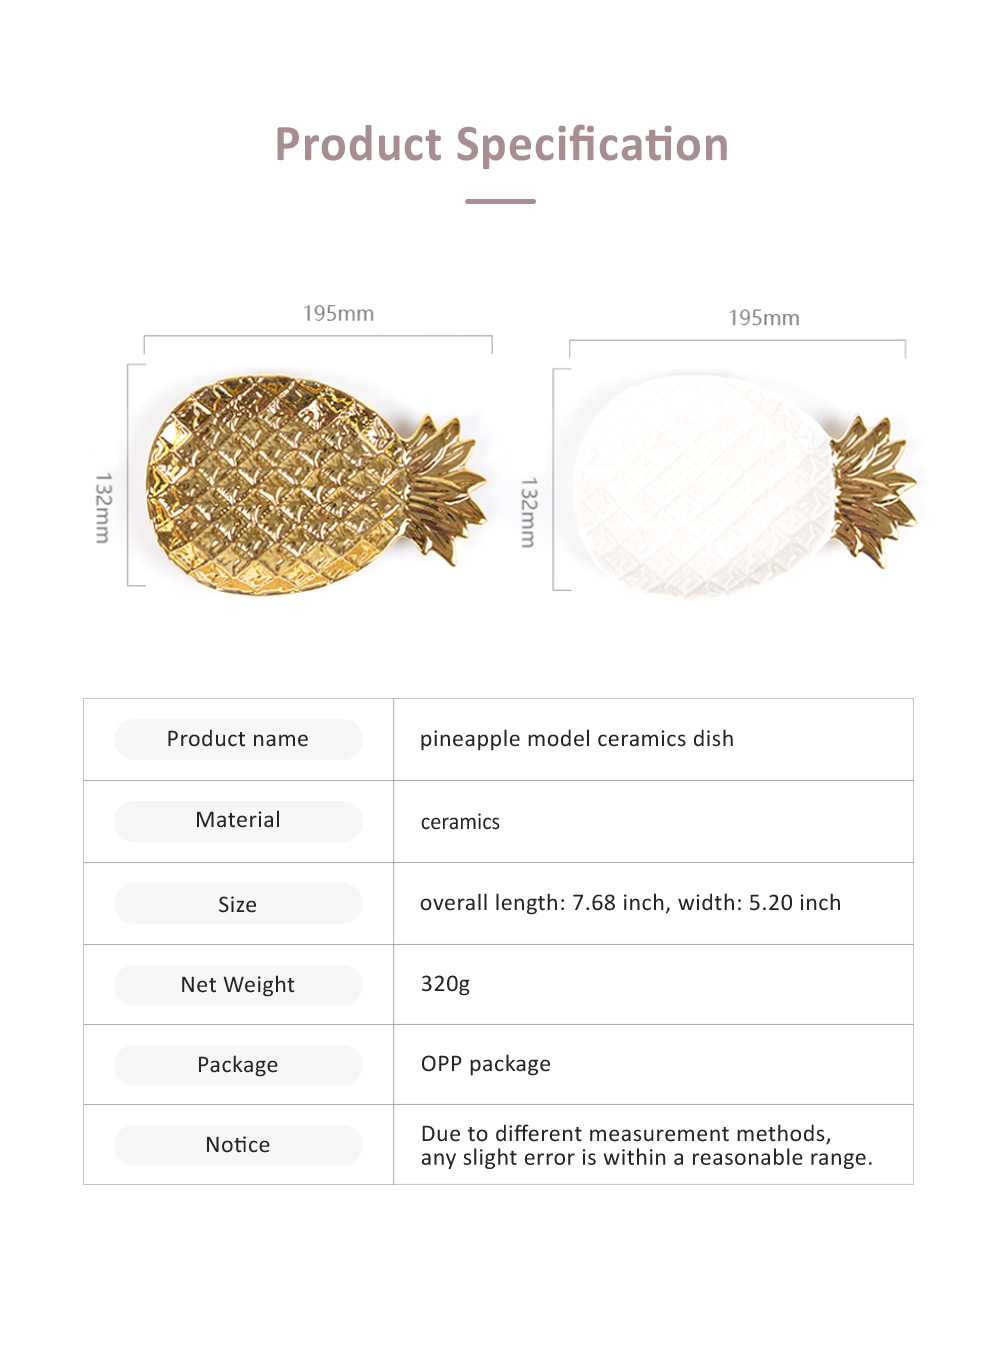 Golden Pineapple Model Ceramics Dish with Creative Shiny Electroplating , Exquisite Jewelry Storage Dessert Fruits Tray 5